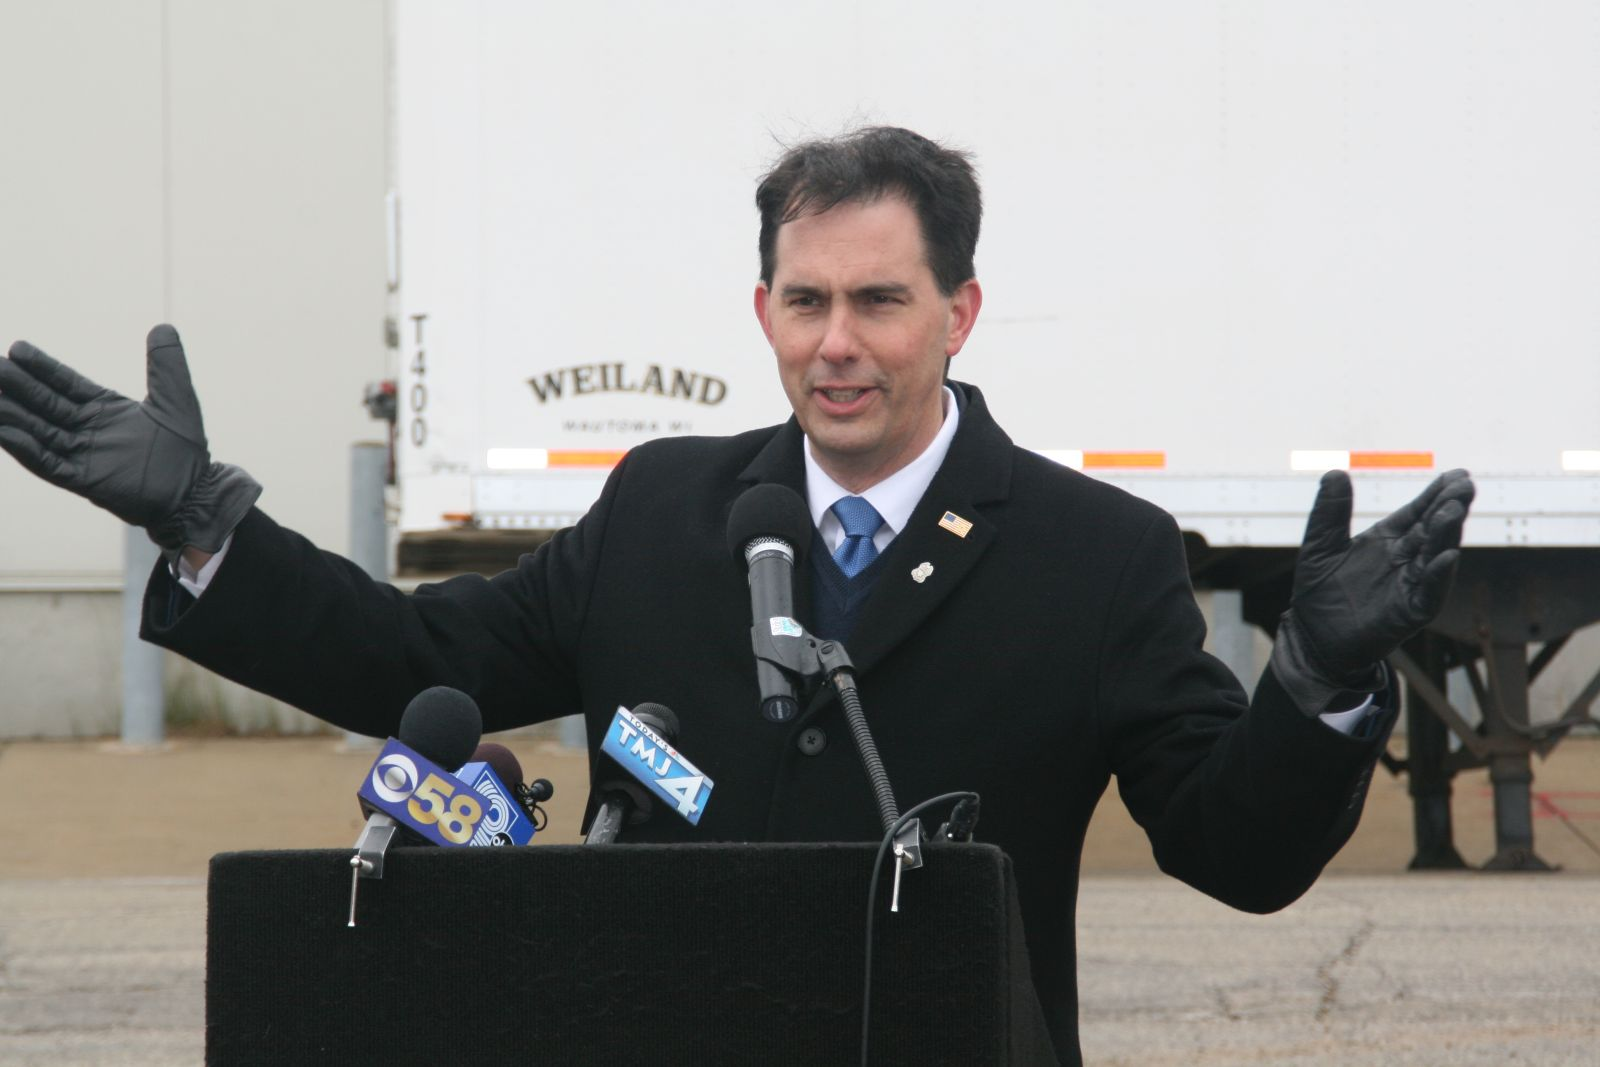 Gov. Scott Walker Praises Creators of Student Loan Debt Crisis